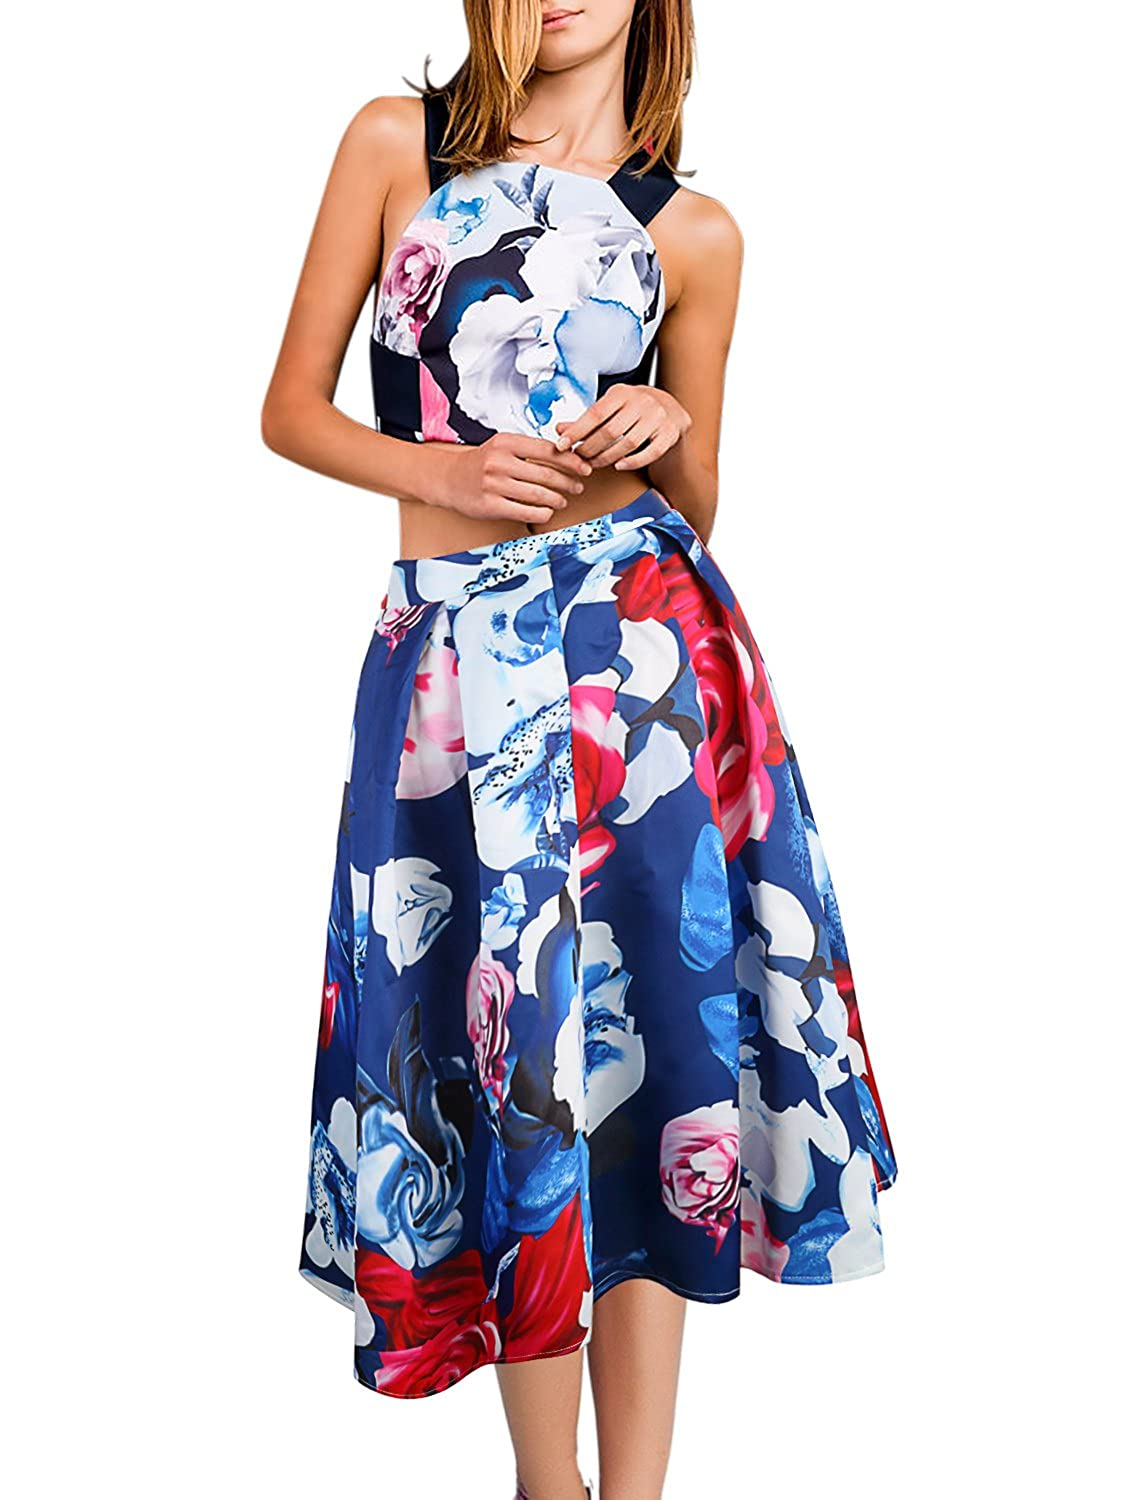 8be620c42a Top Features: Sexy Open Back Cross Strap, Floral Print, sleeveless, zipper  back, soft and breathable fabric,comfortable to wear. Skirt Features: High  waist, ...